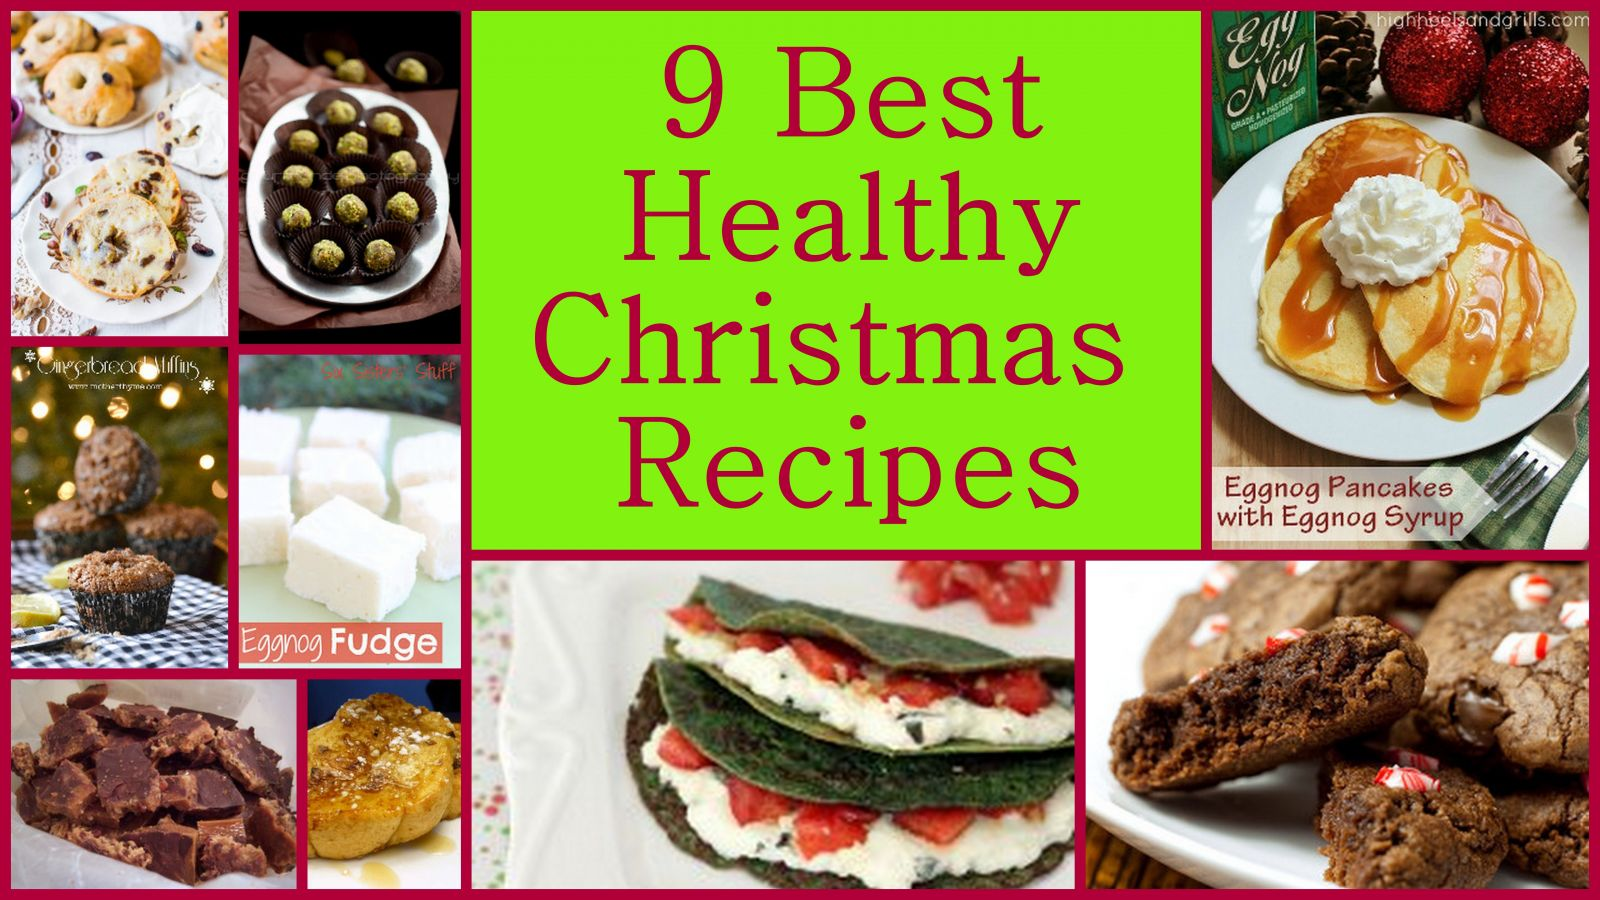 9 Best Healthy Christmas Recipes